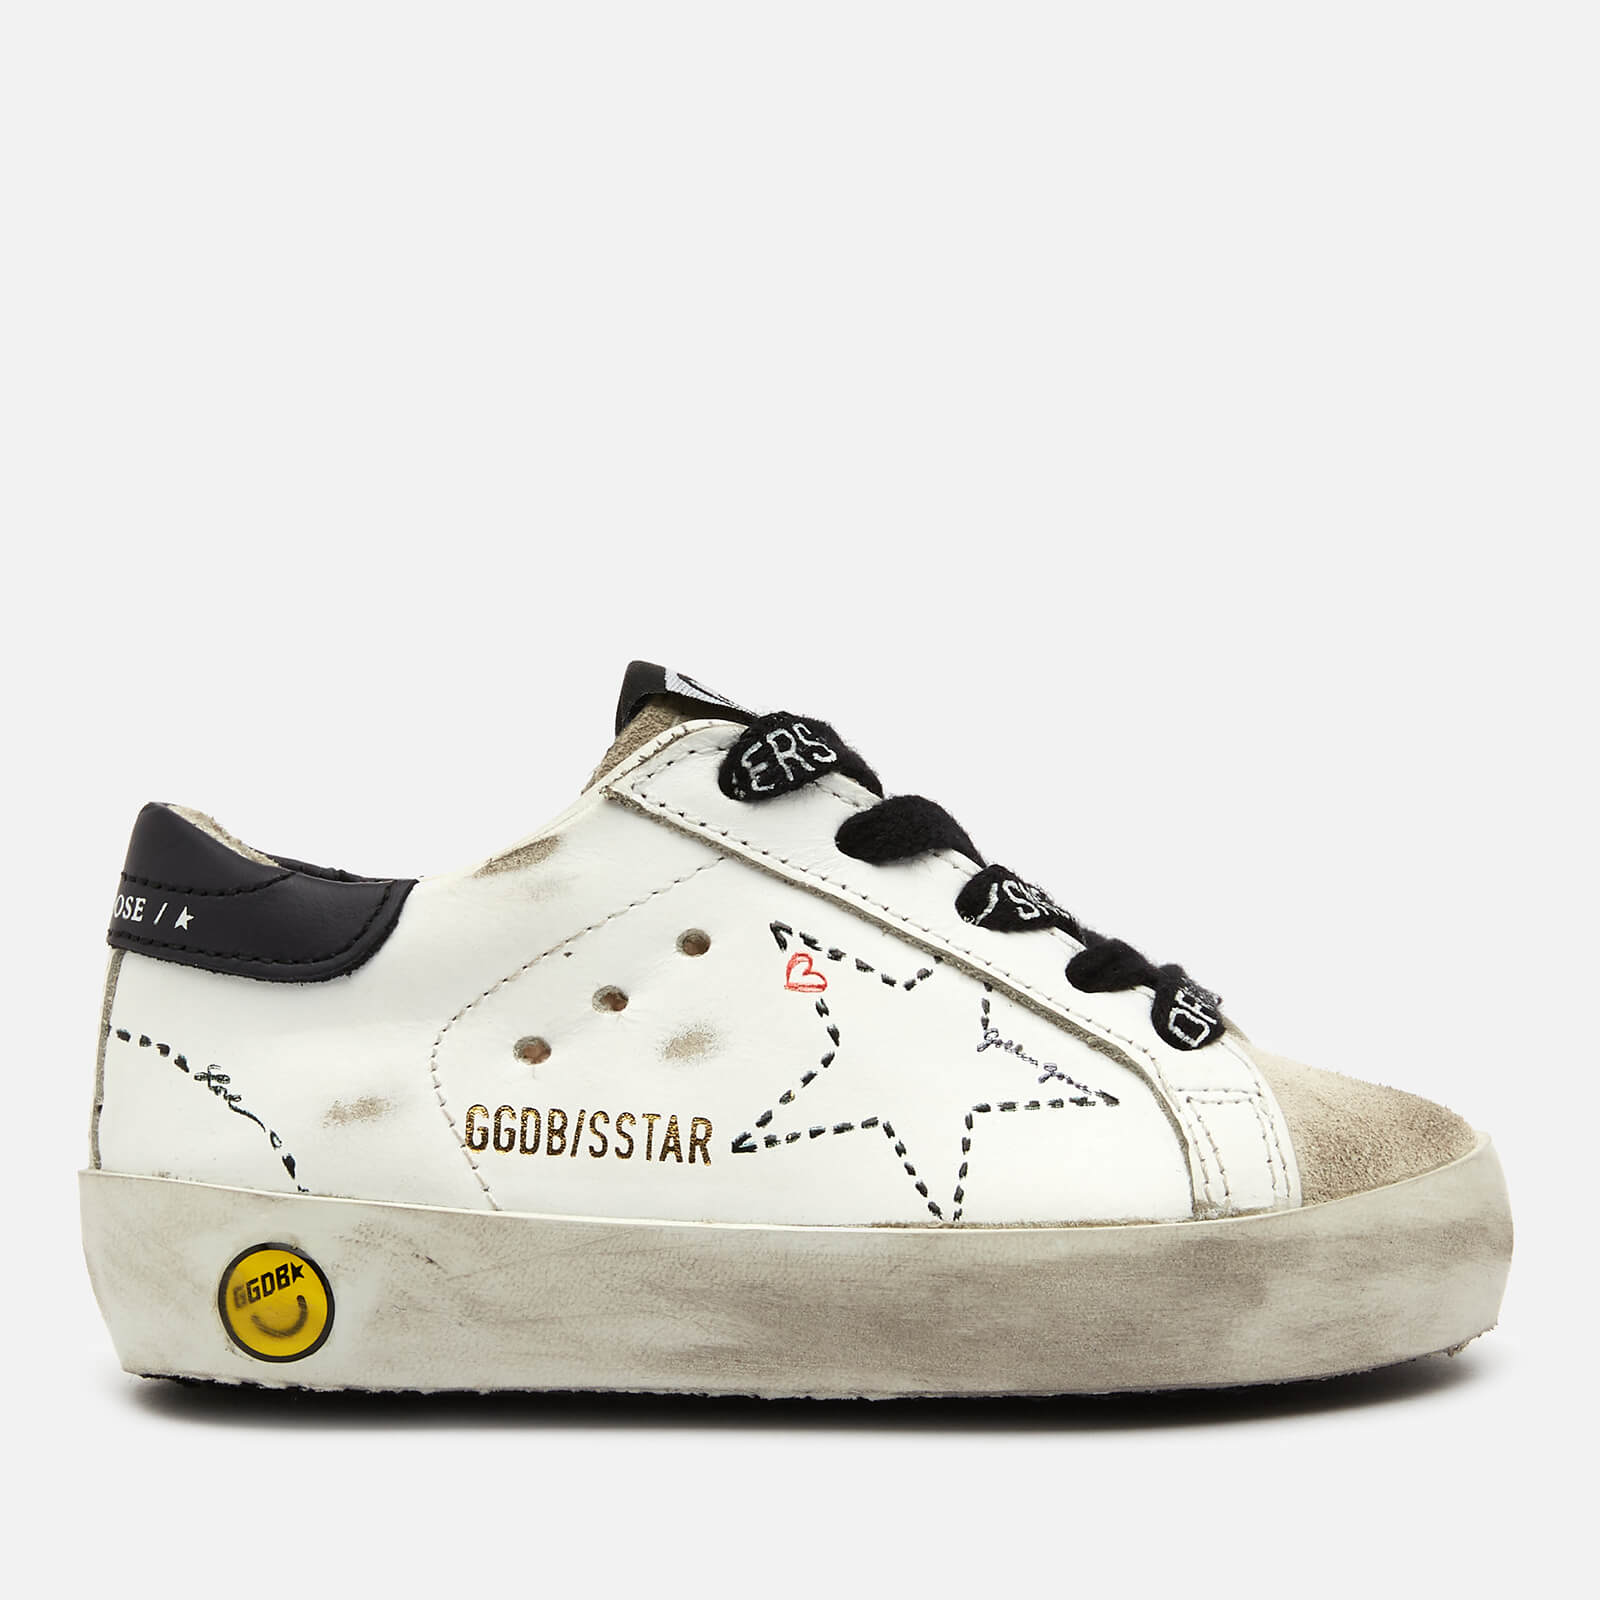 Golden Goose Deluxe Brand Toddlers' Super Star Family Leather Trainers - White/Ice - UK 4 Toddler